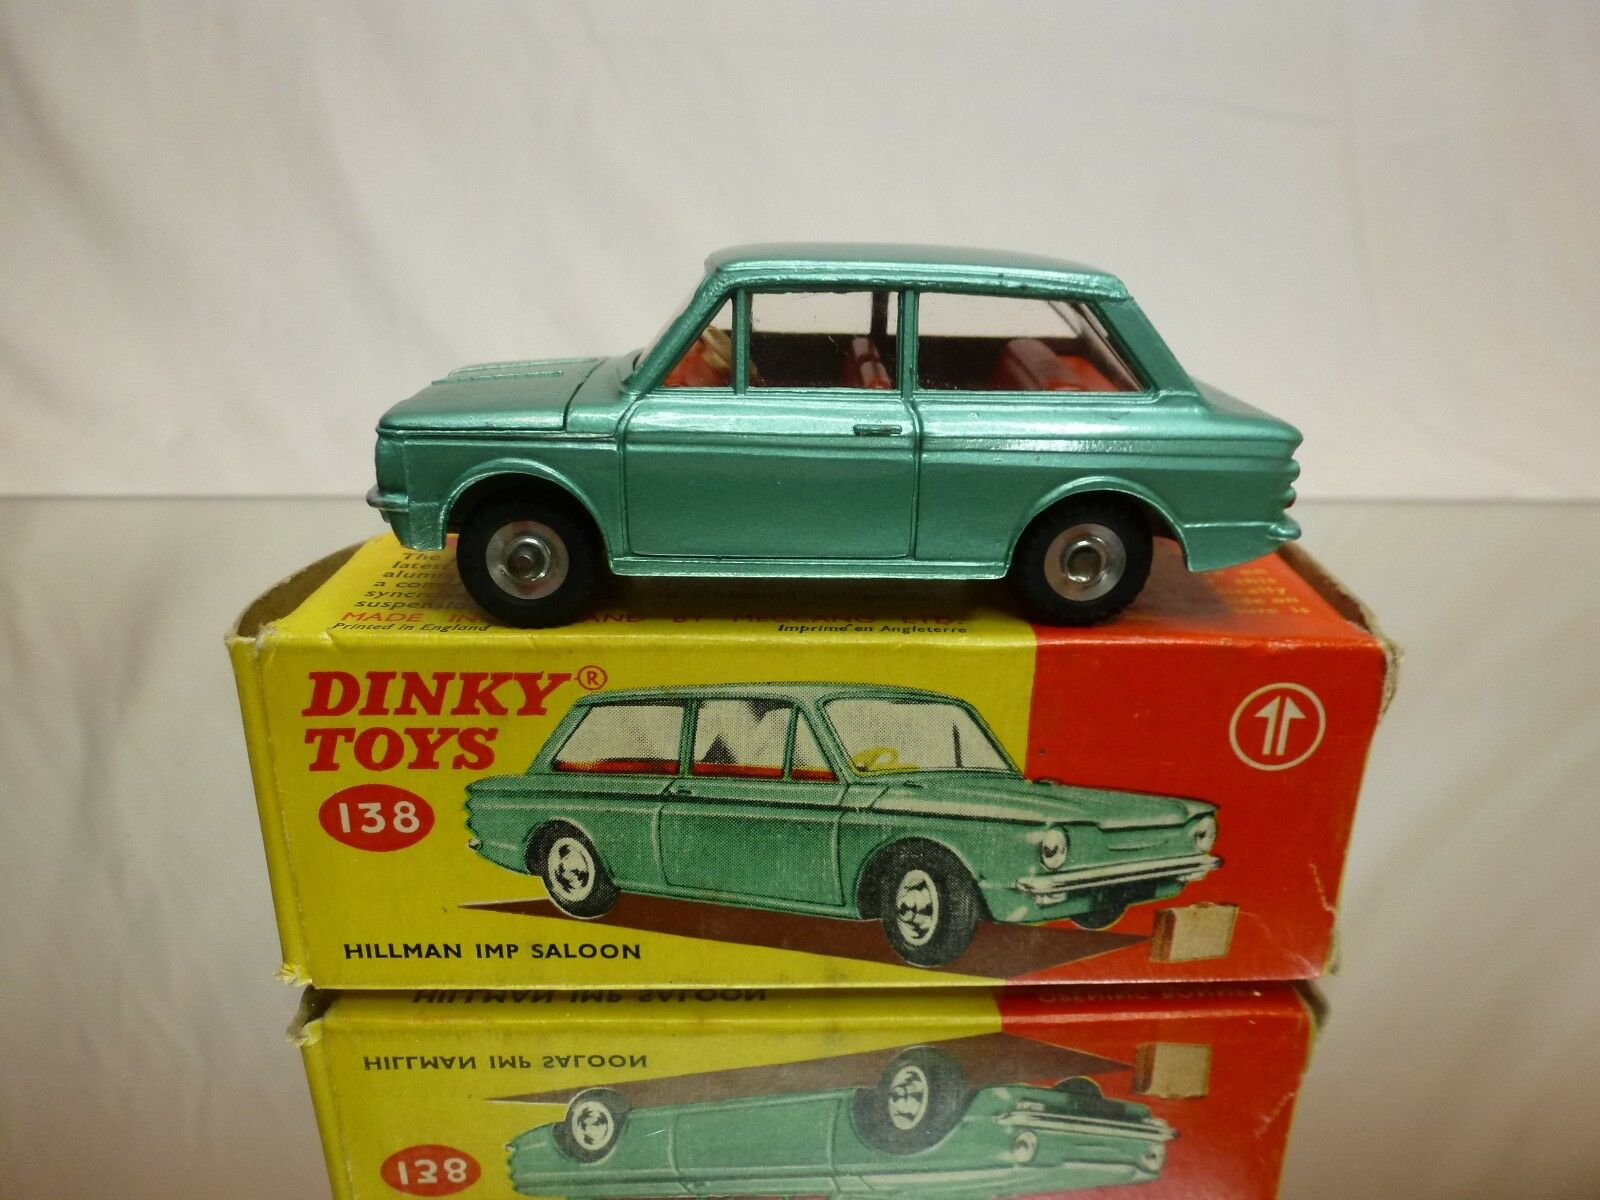 DINKY TOYS -  138 HILLMAN IMP SALOON  - VERY GOOD CONTITION  IN BOX